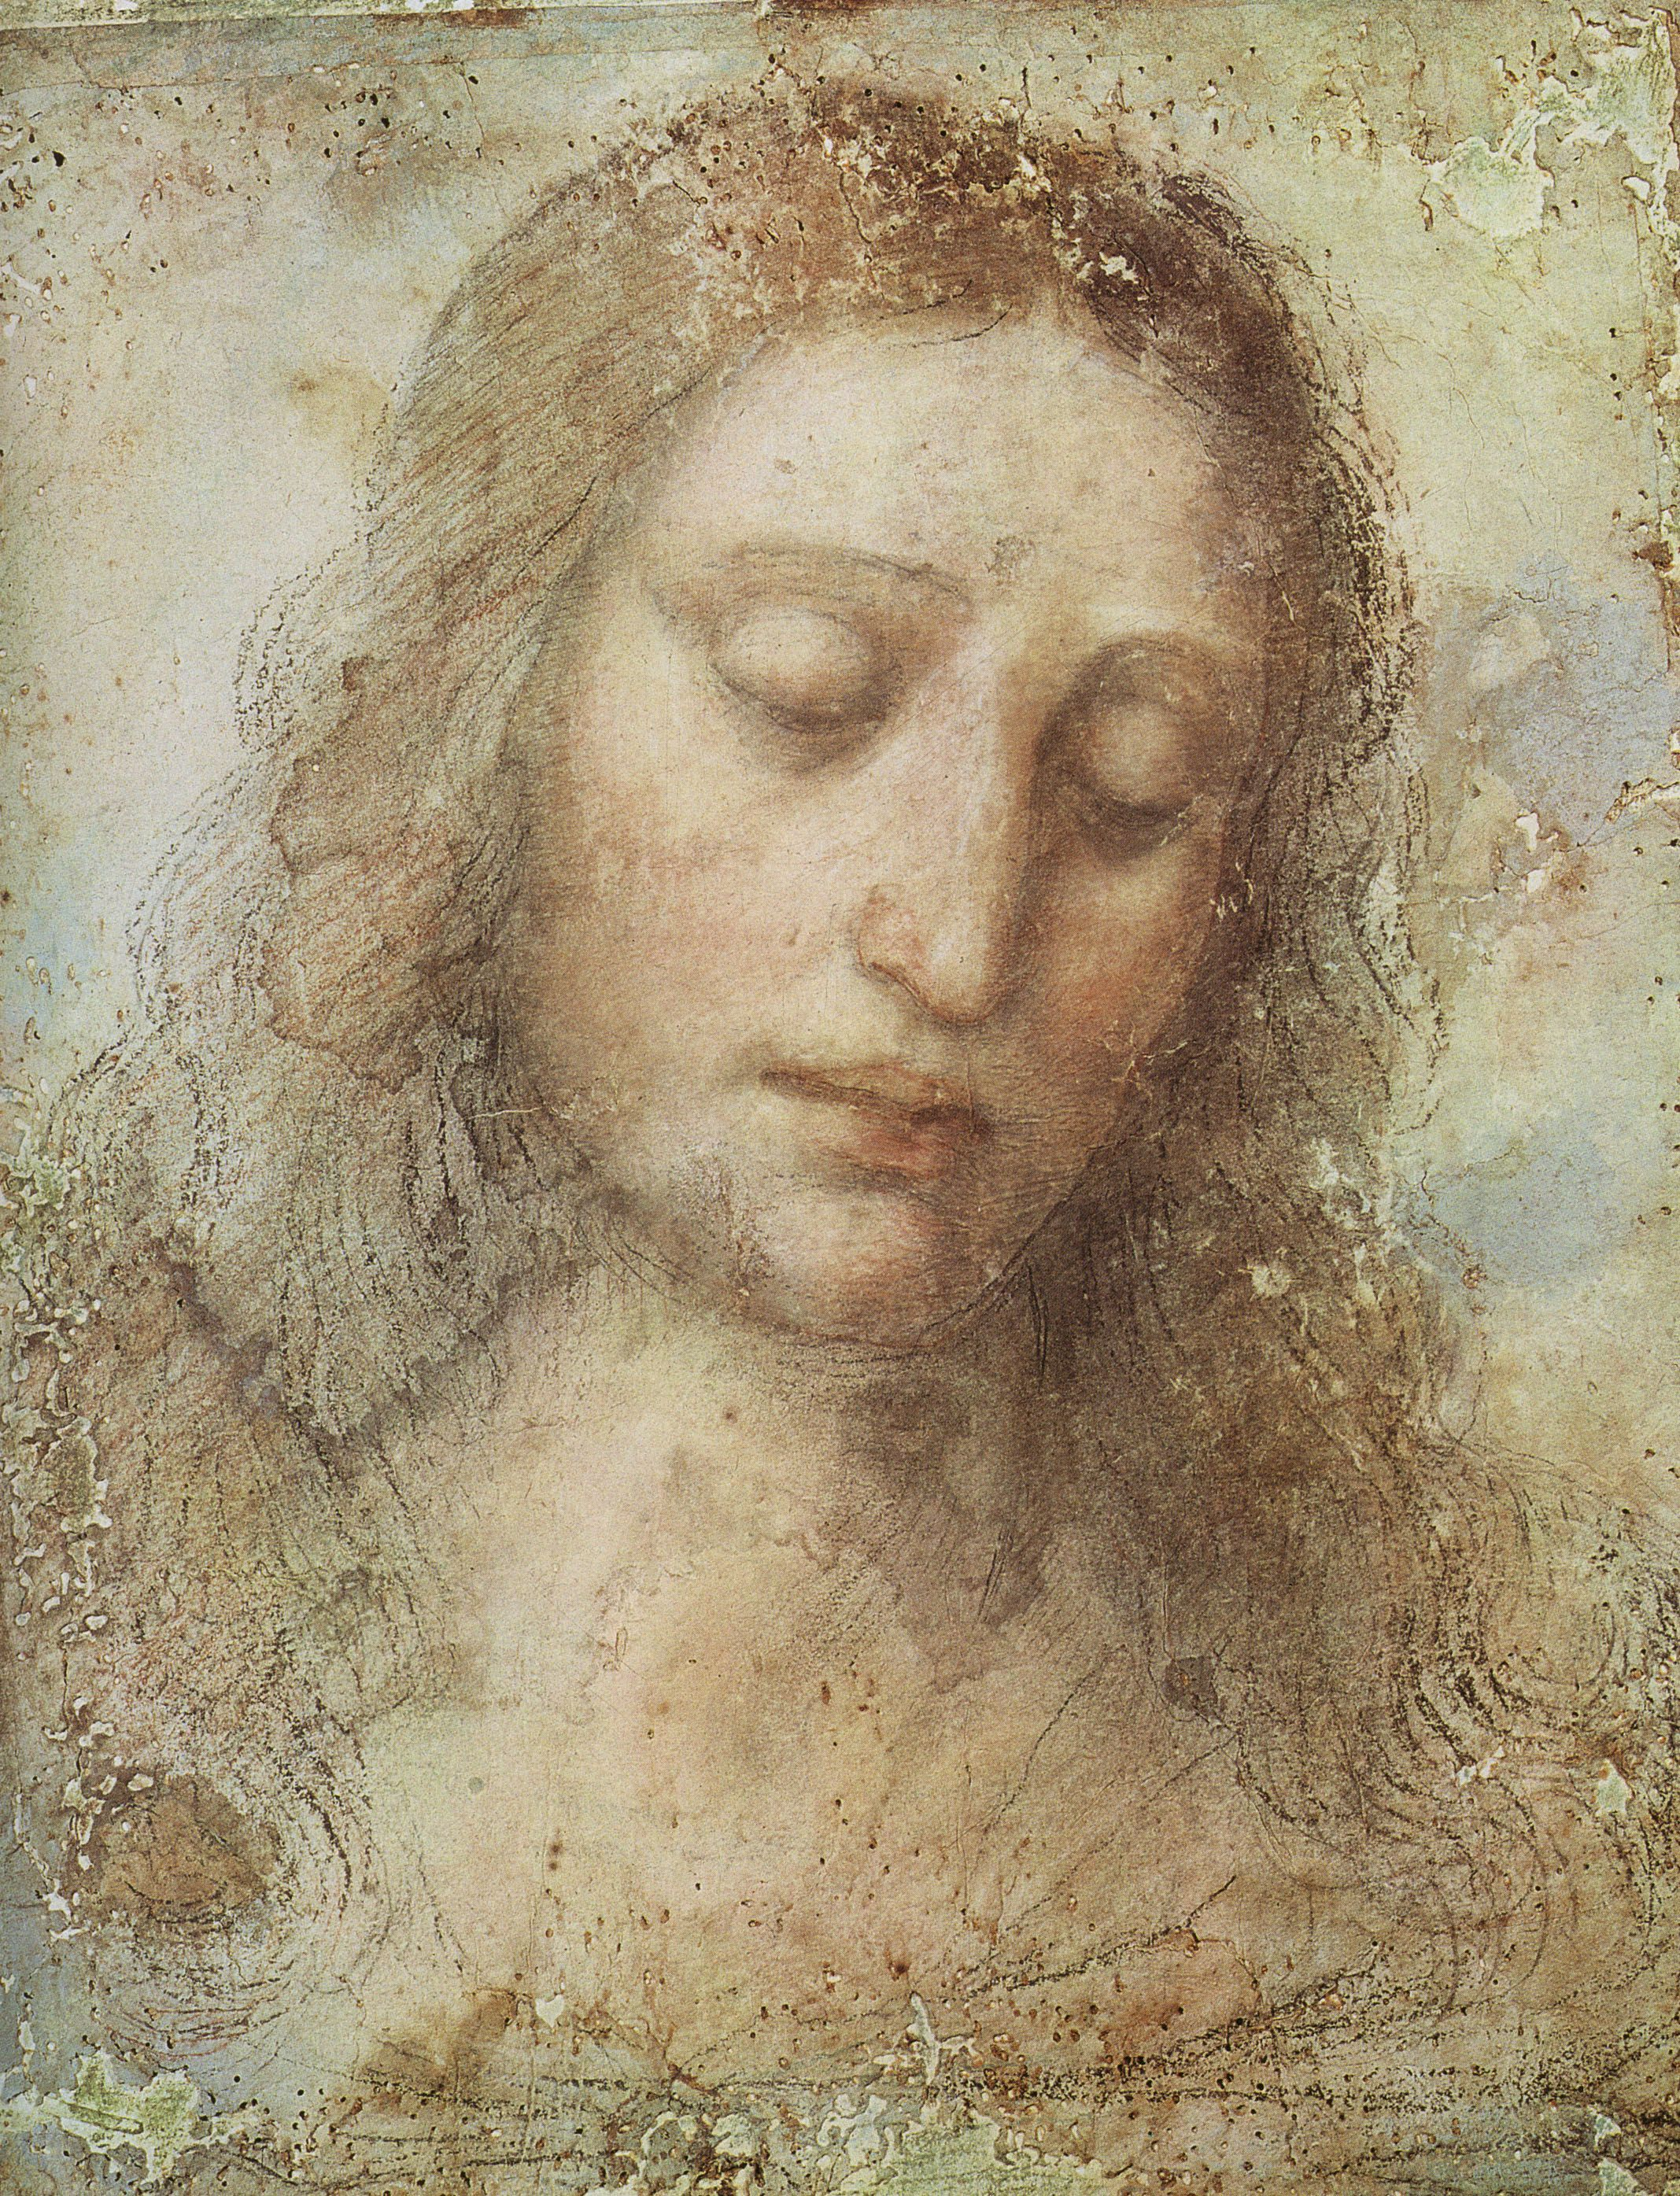 Head of Christ - Leonardo da Vinci